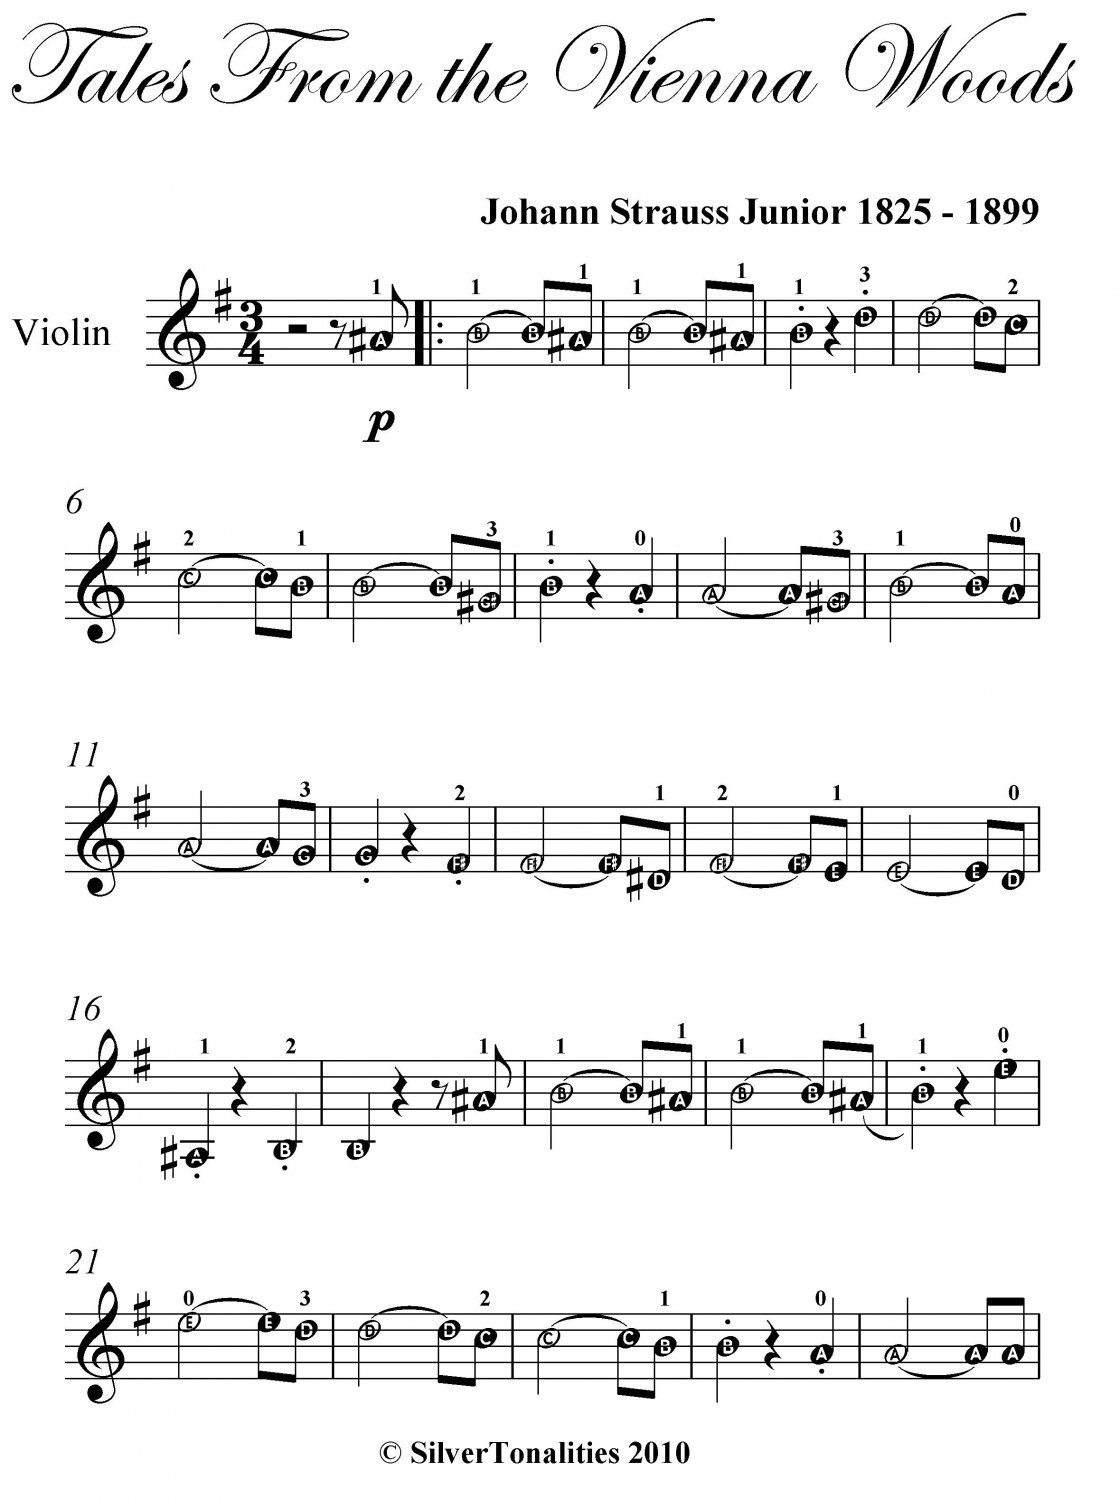 Tales from the Vienna Woods Easy Violin Sheet Music PDF